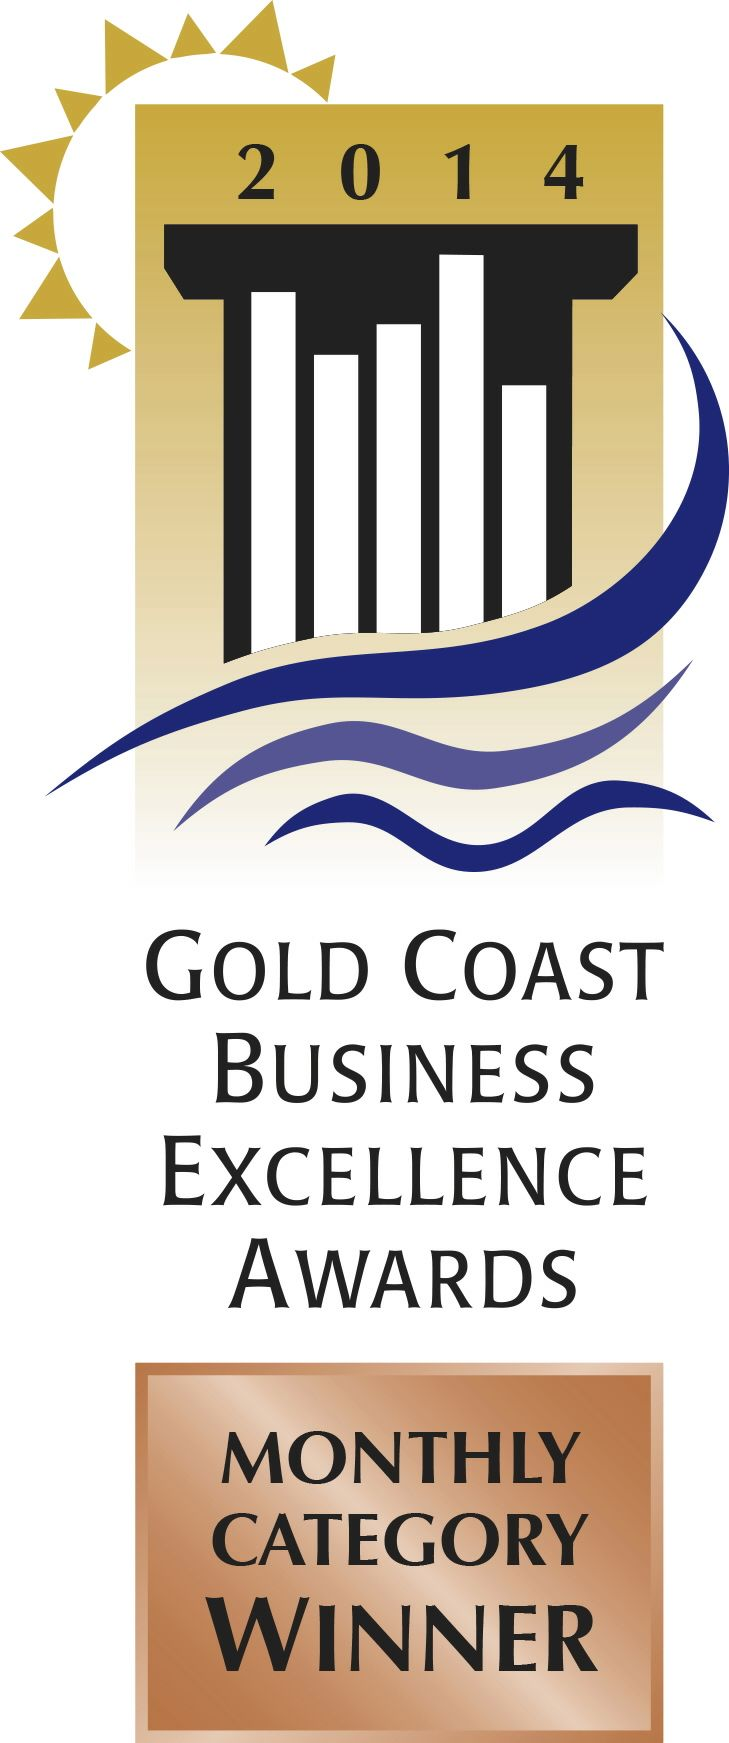 Gold Coast Business Excellence Award